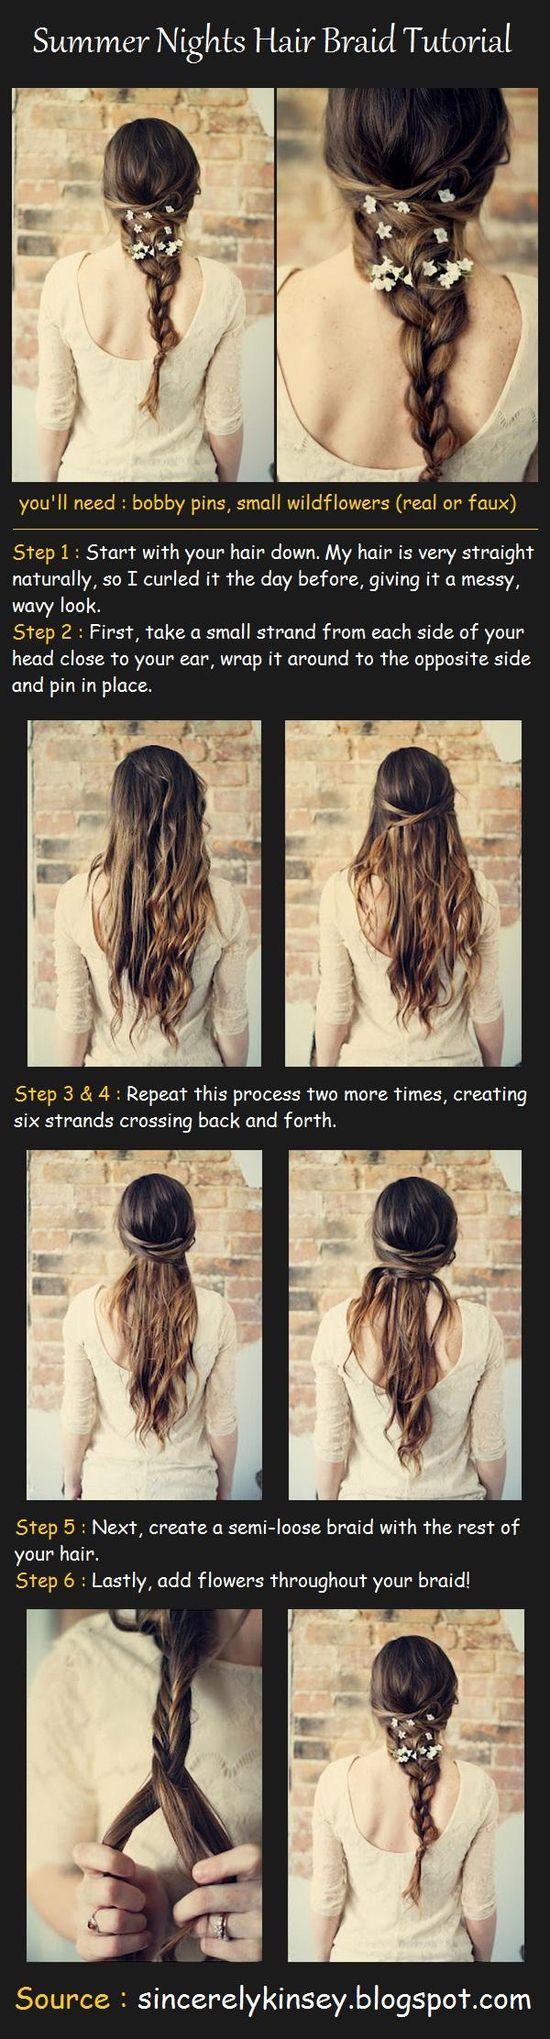 Summer Nights Hair Braid Tutorial